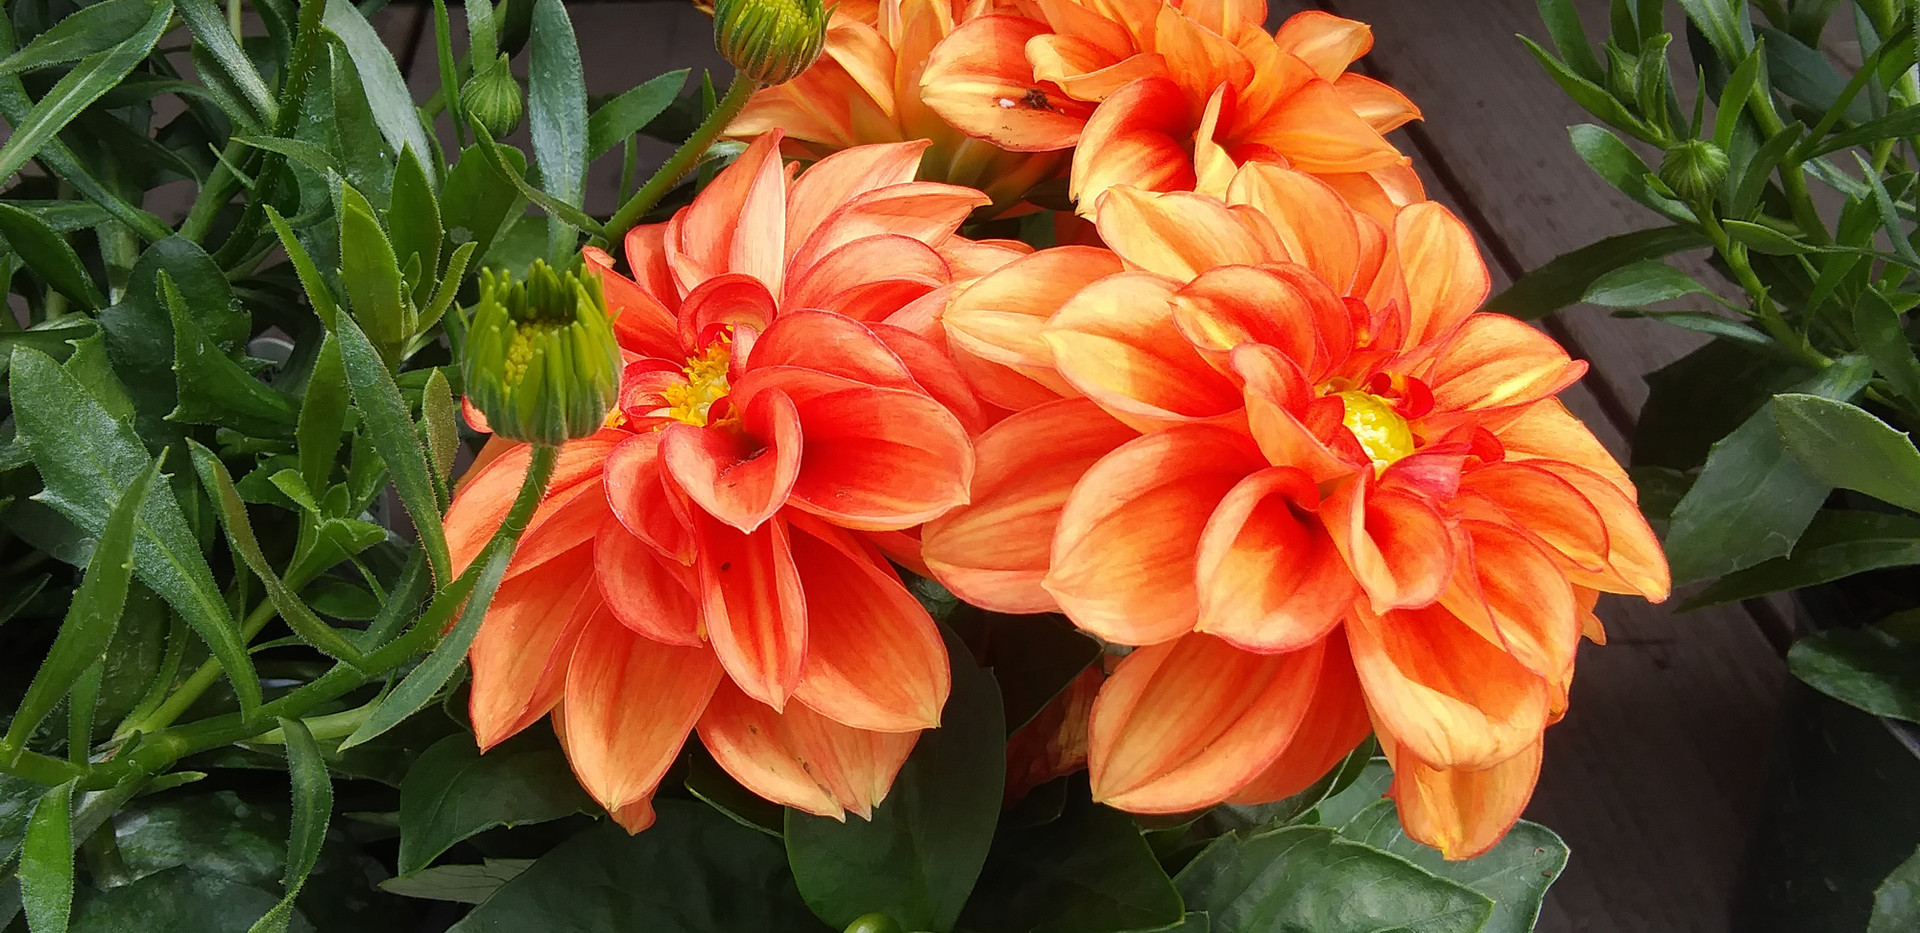 Dahlias in so many colors!